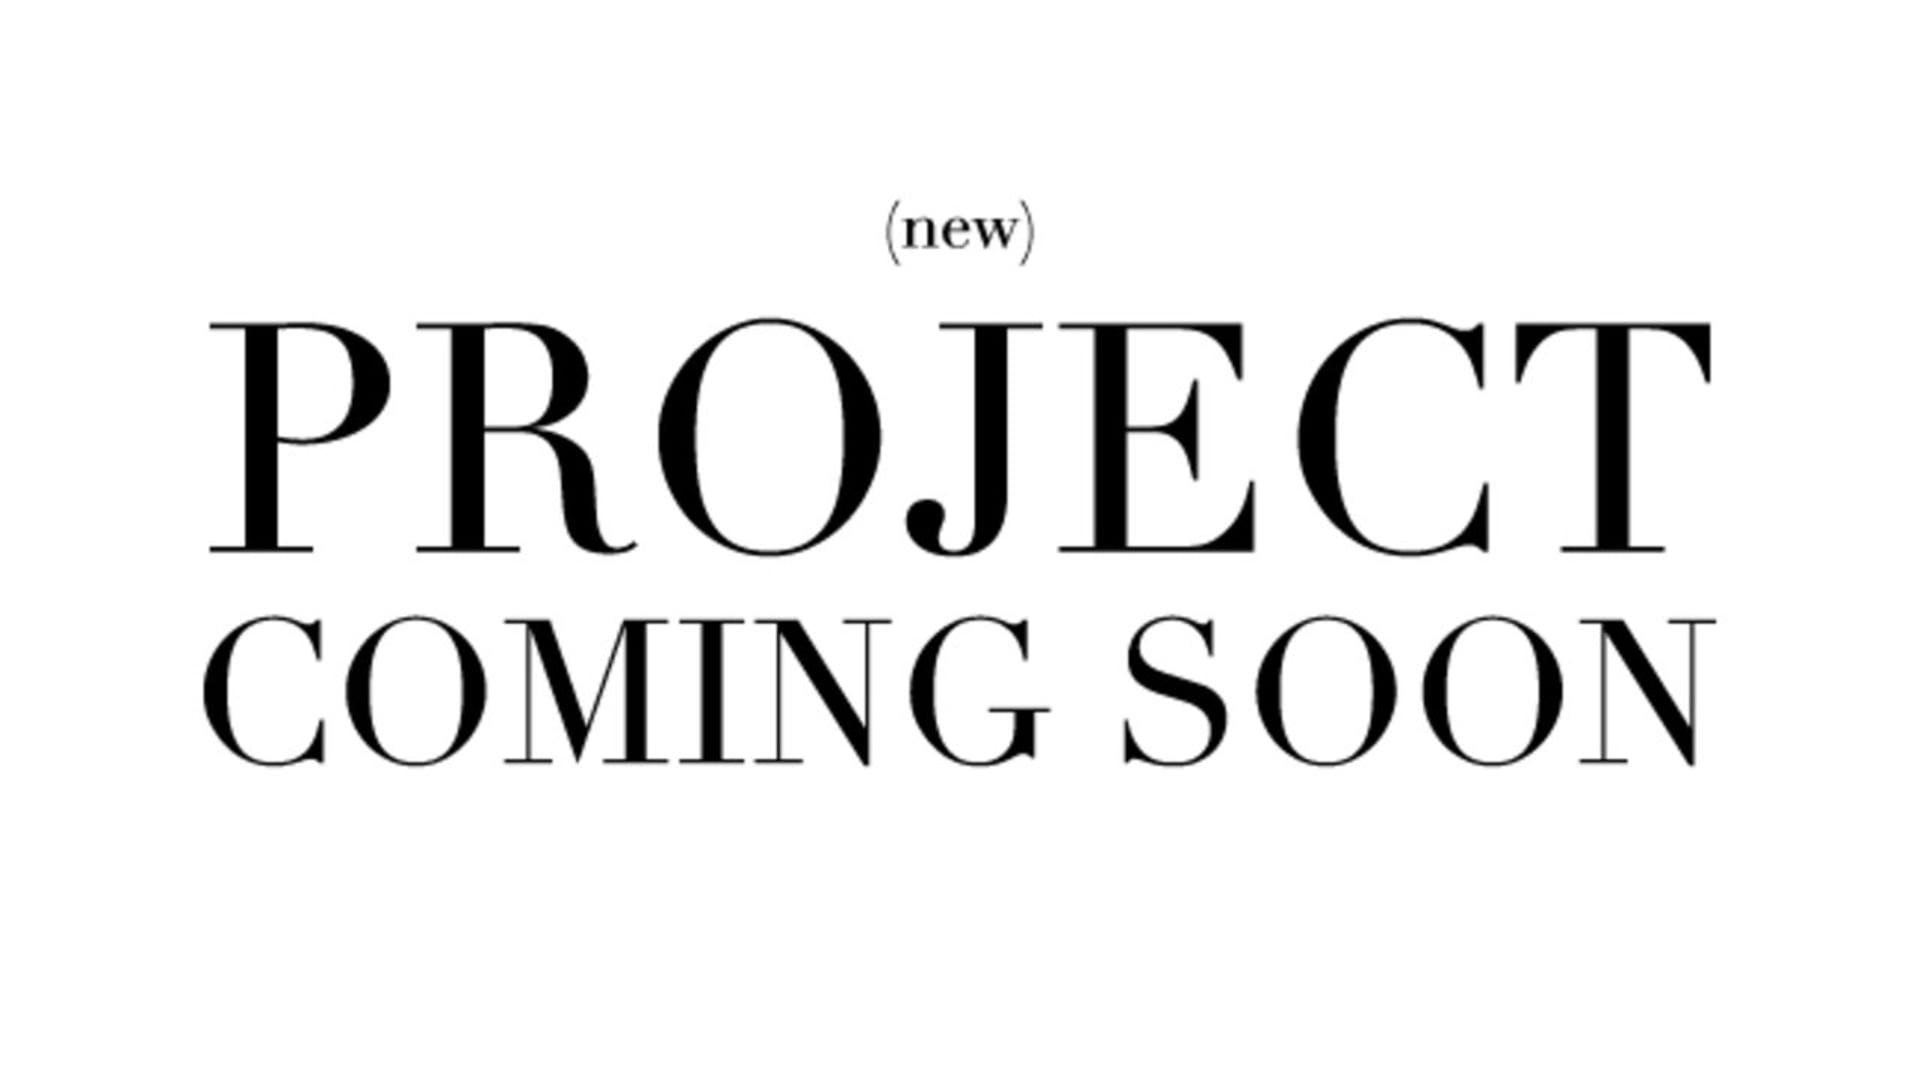 (new) PROJECT COMING SOON